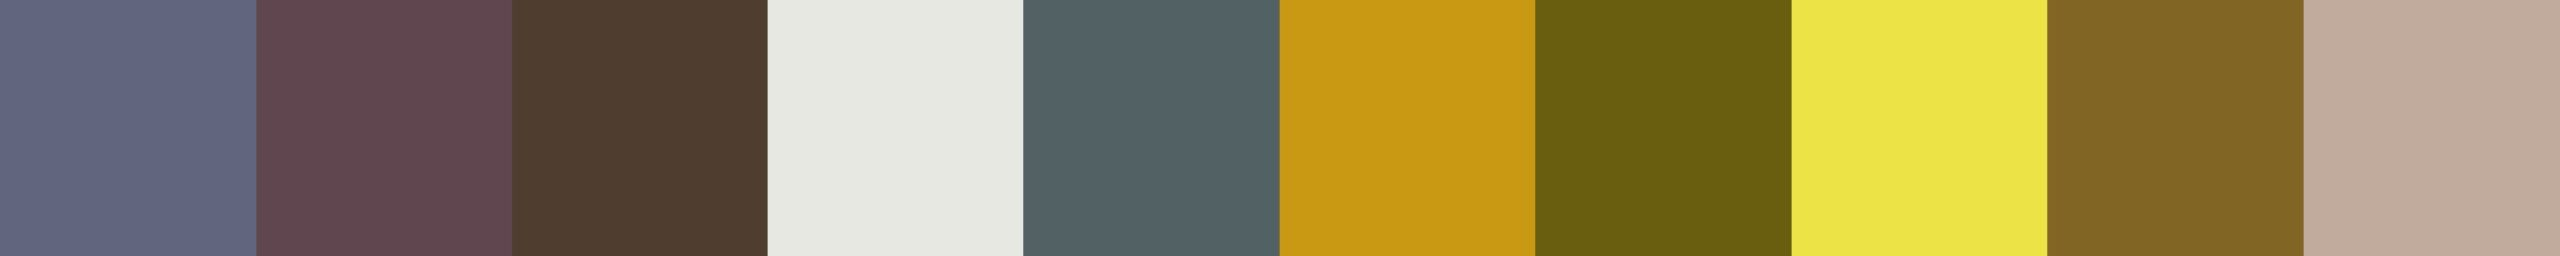 307 Kedasiama Color Palette